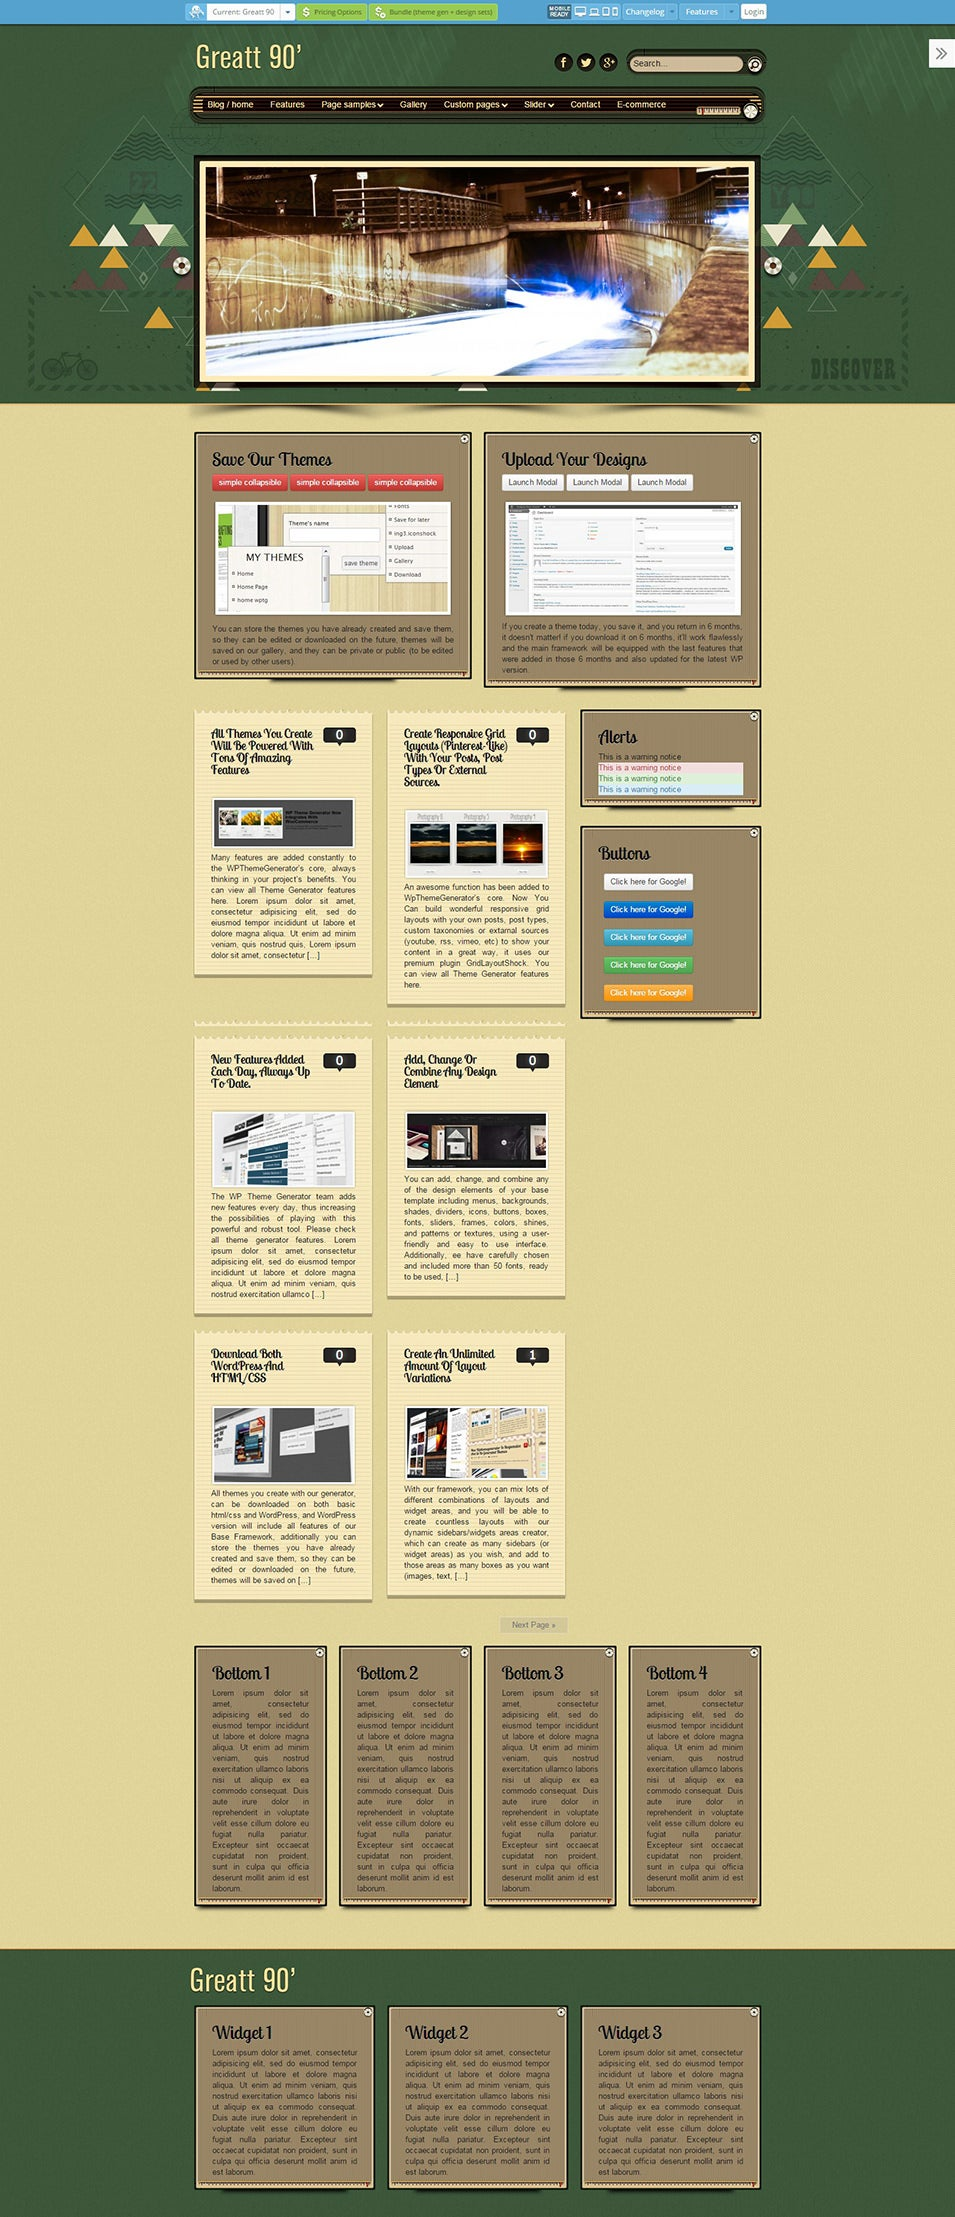 Retro ecommerce wordpress theme